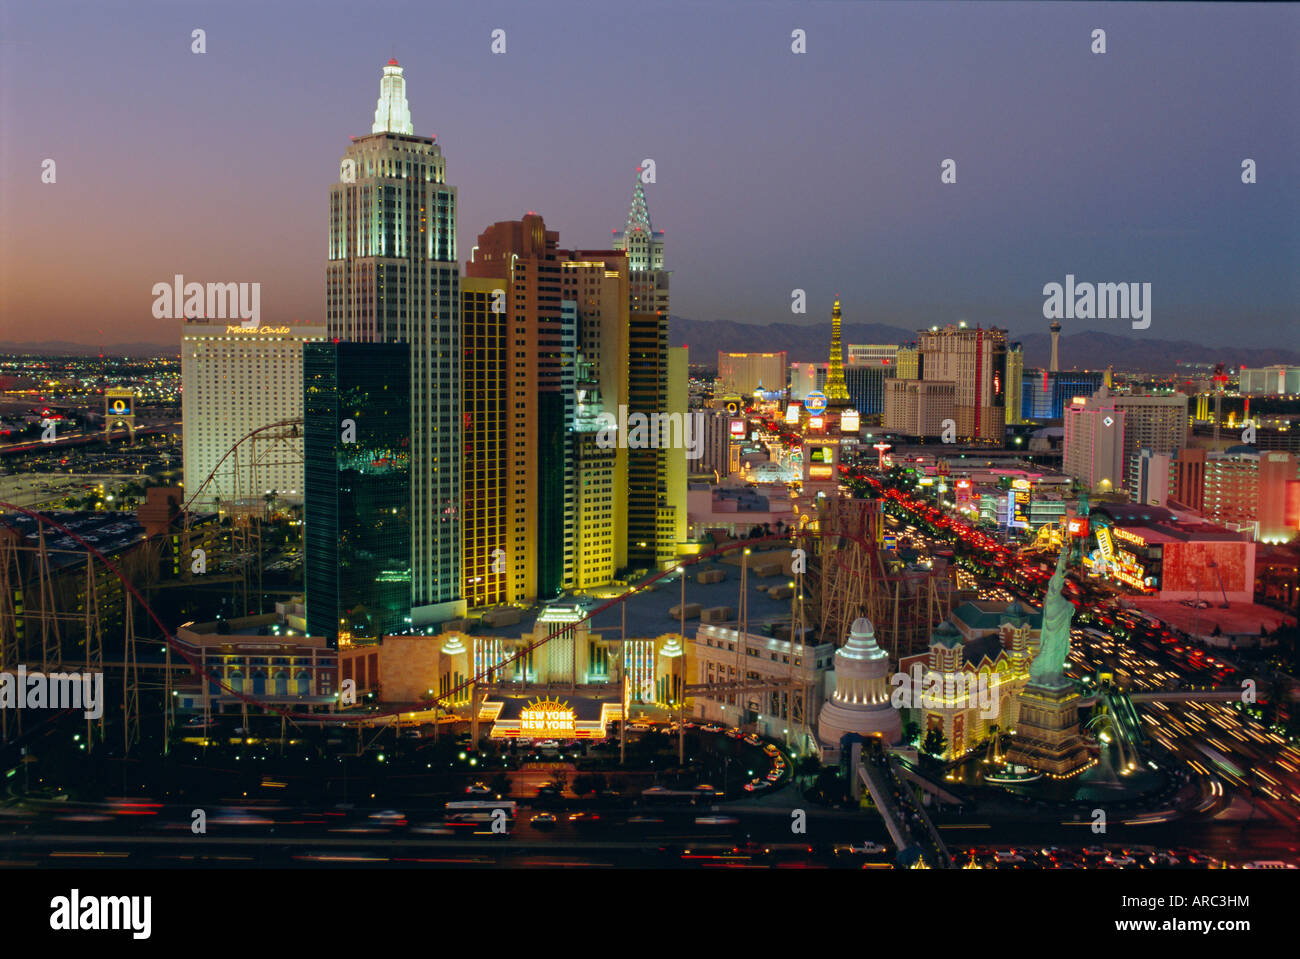 New York, New York Hotel and Casino and the Strip, Las Vegas, Nevada, USA - Stock Image